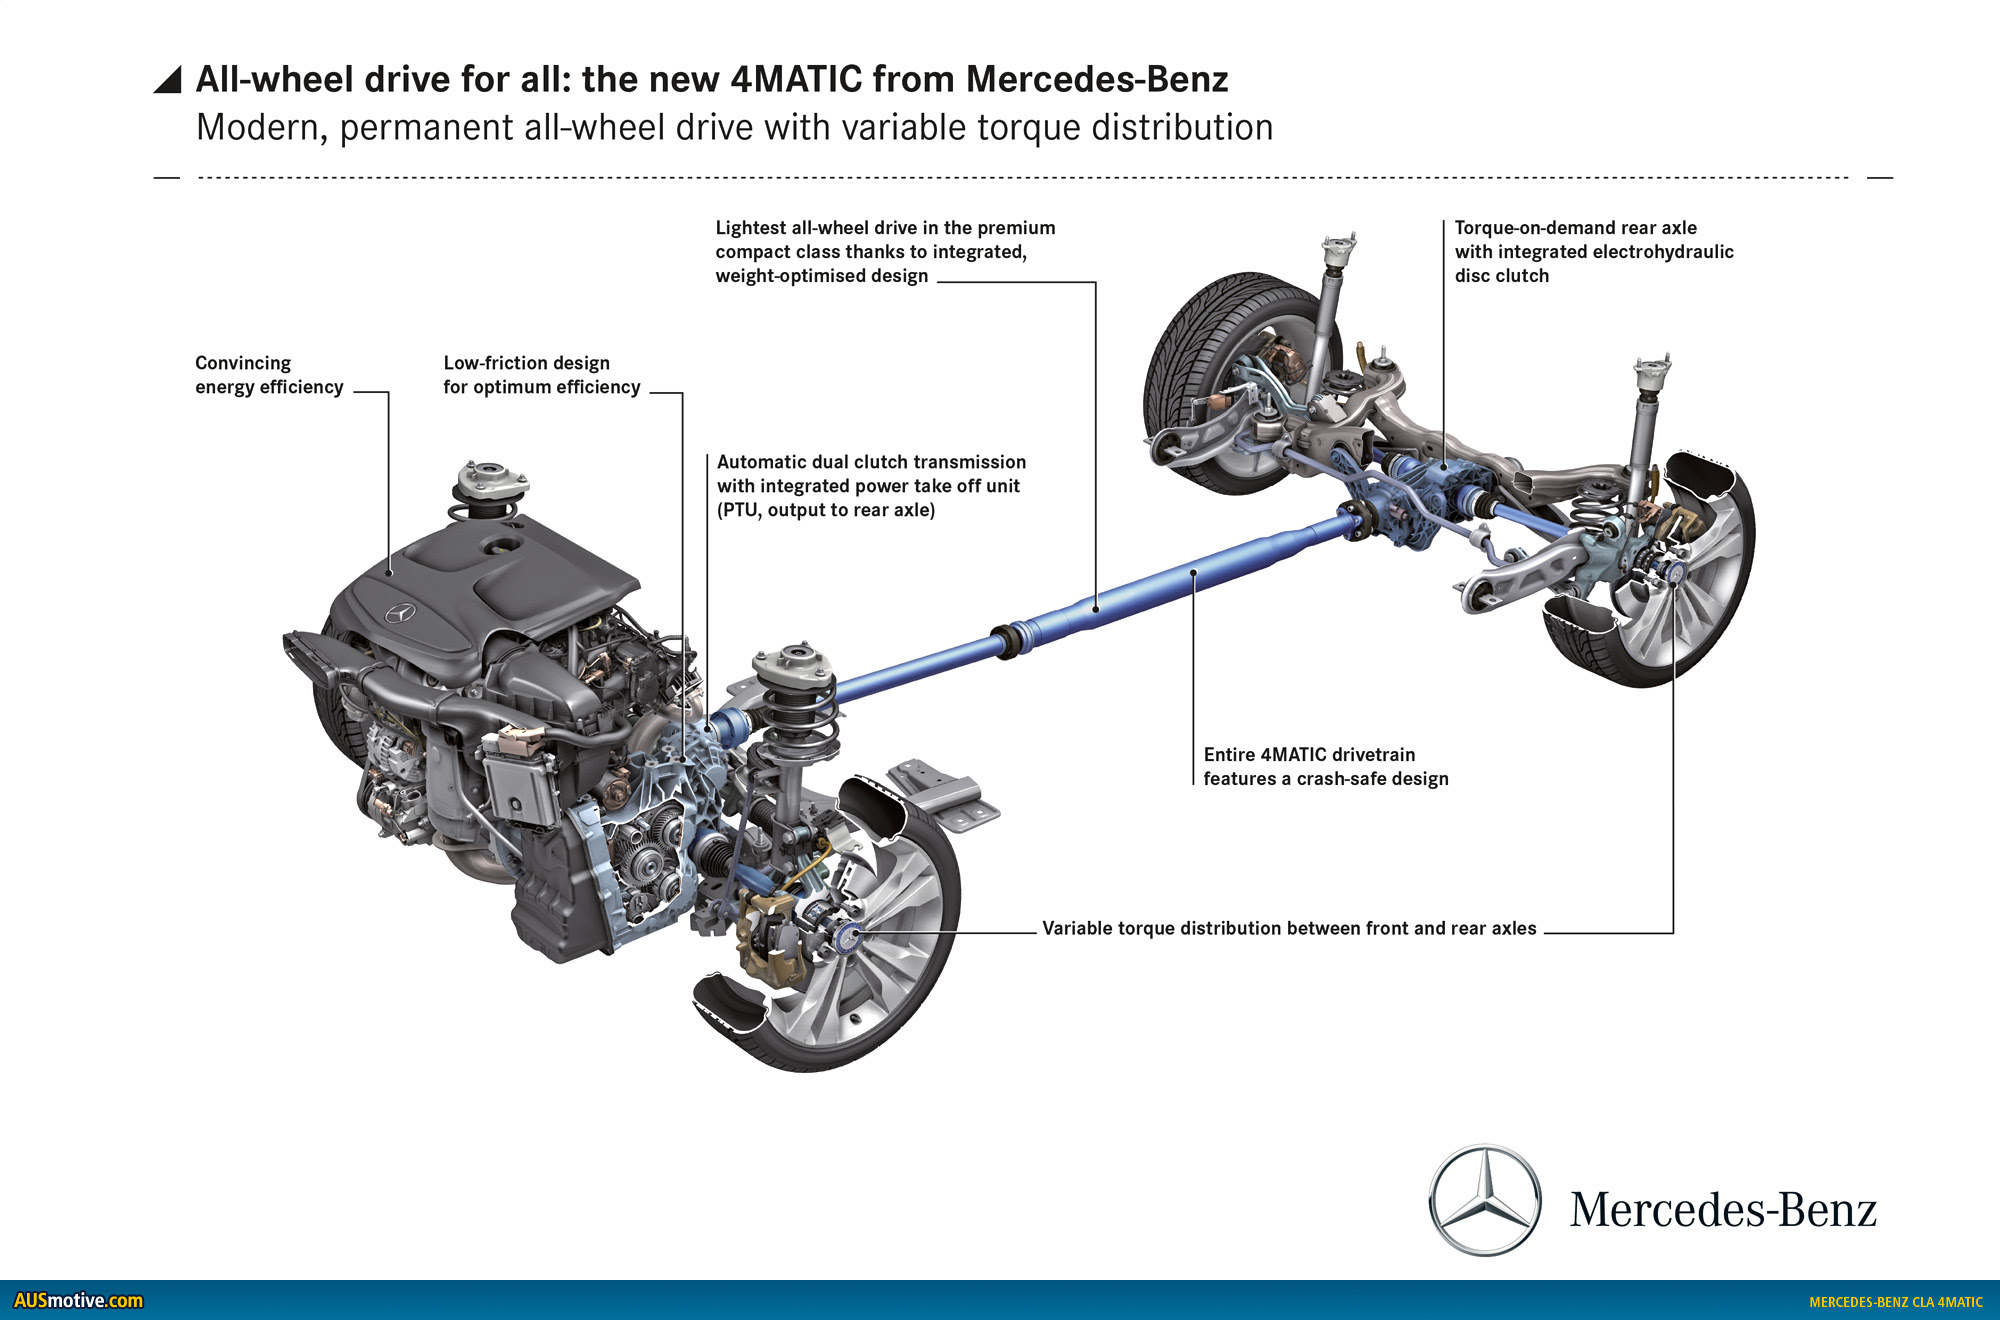 AUSmotive.com » Mercedes promoting 4matic for the people